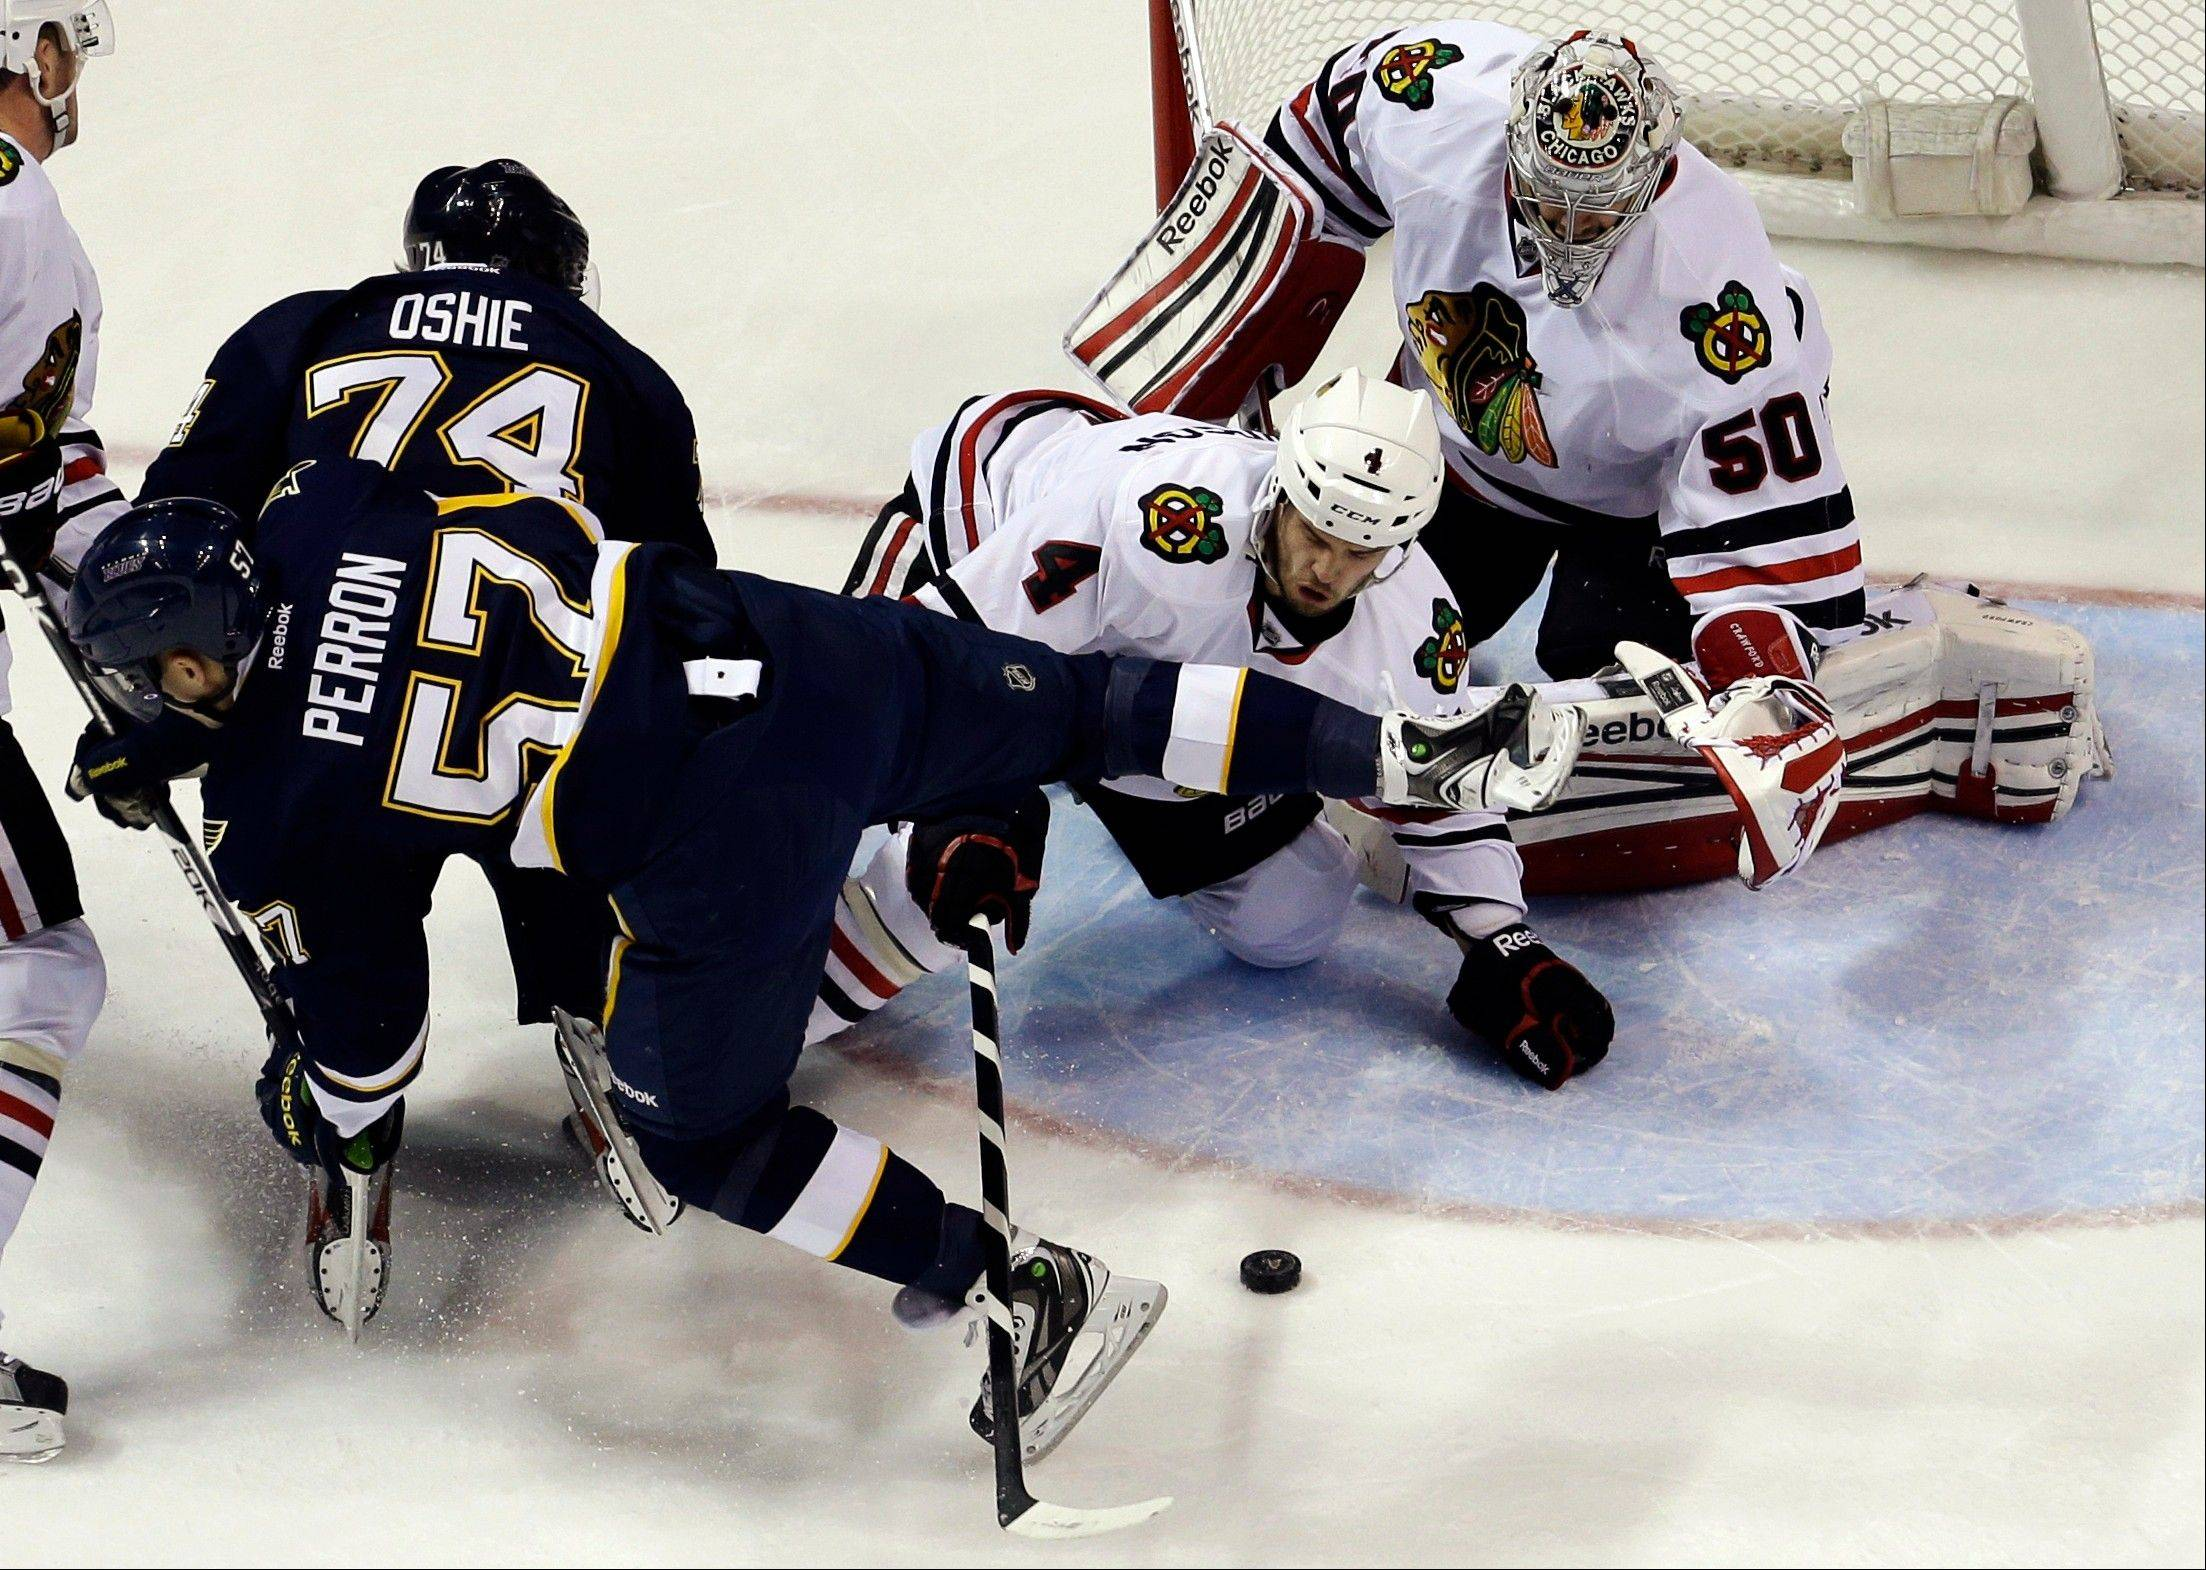 Chicago Blackhawks goalie Corey Crawford and Niklas Hjalmarsson try to smother a loose puck as St. Louis Blues' David Perron, front left, and T.J. Oshie get in on the play during the first period.